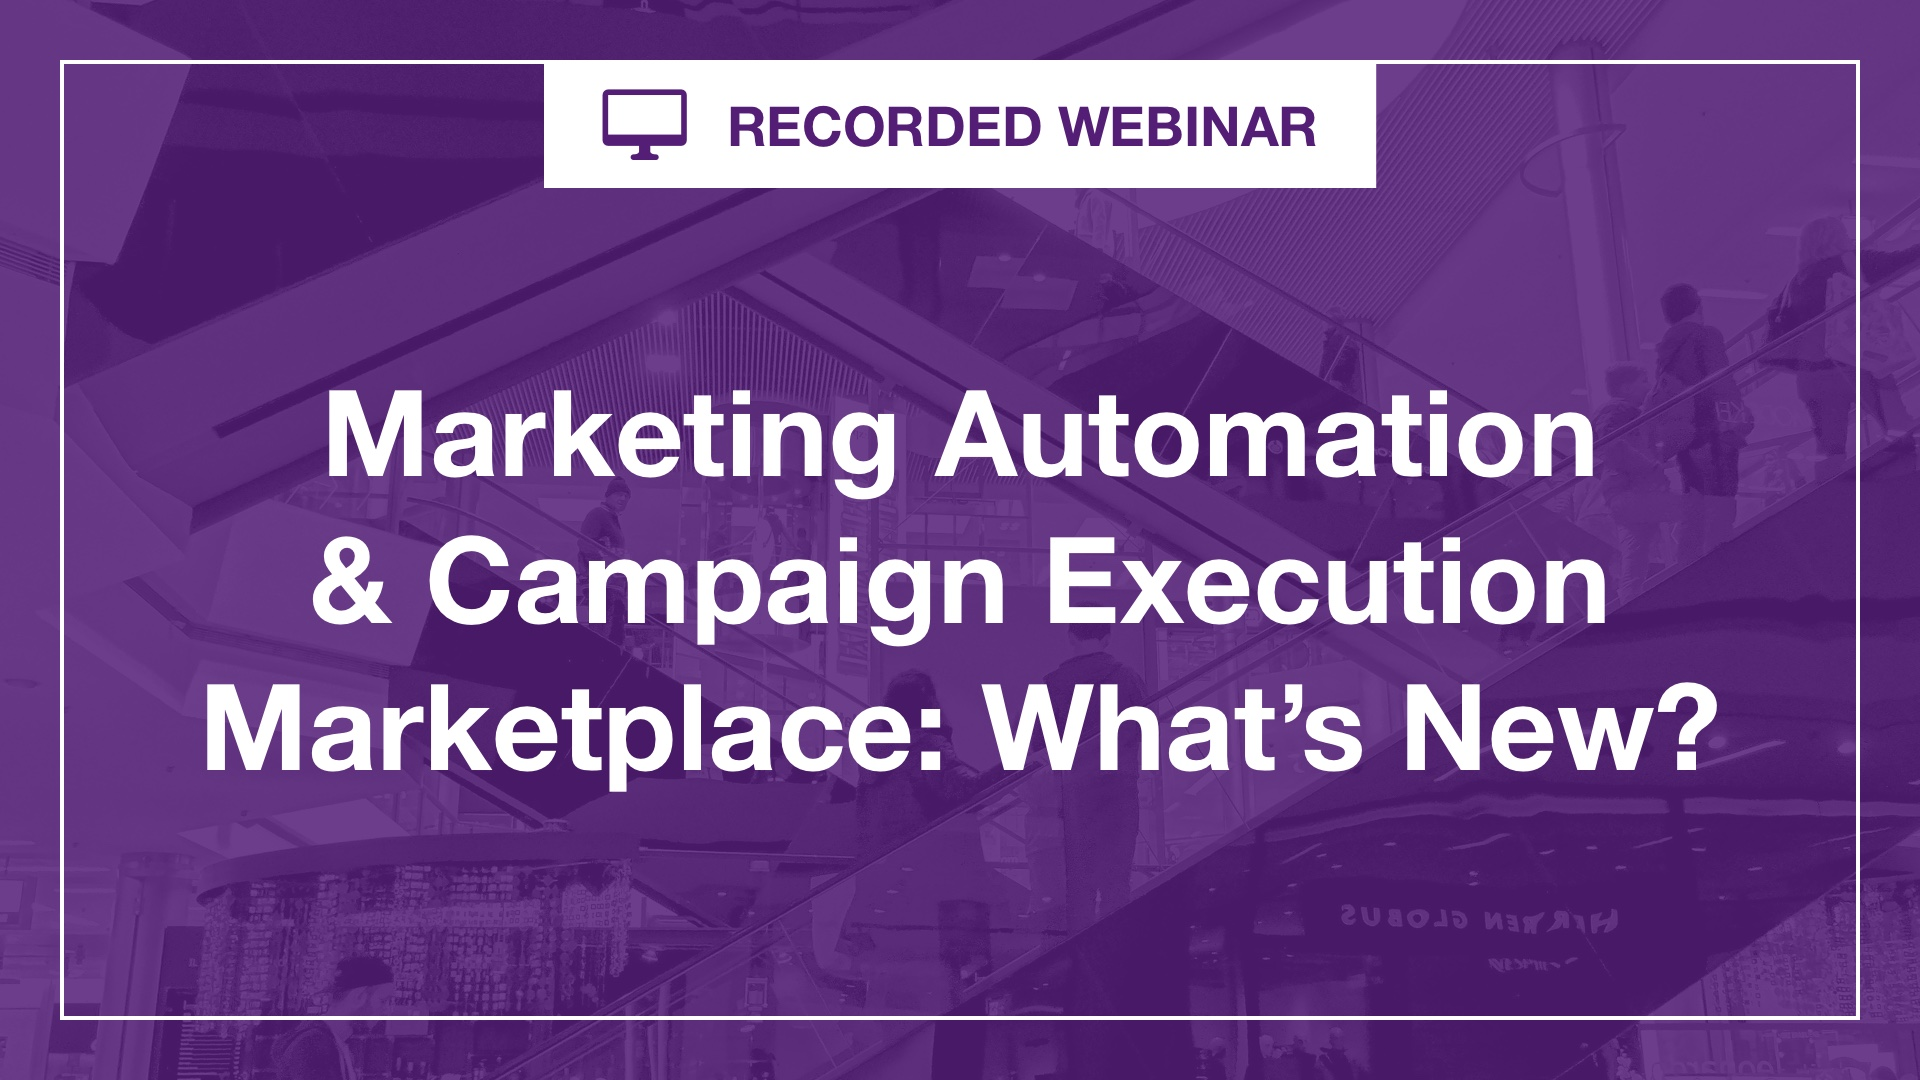 Marketing Automation and Campaign Execution